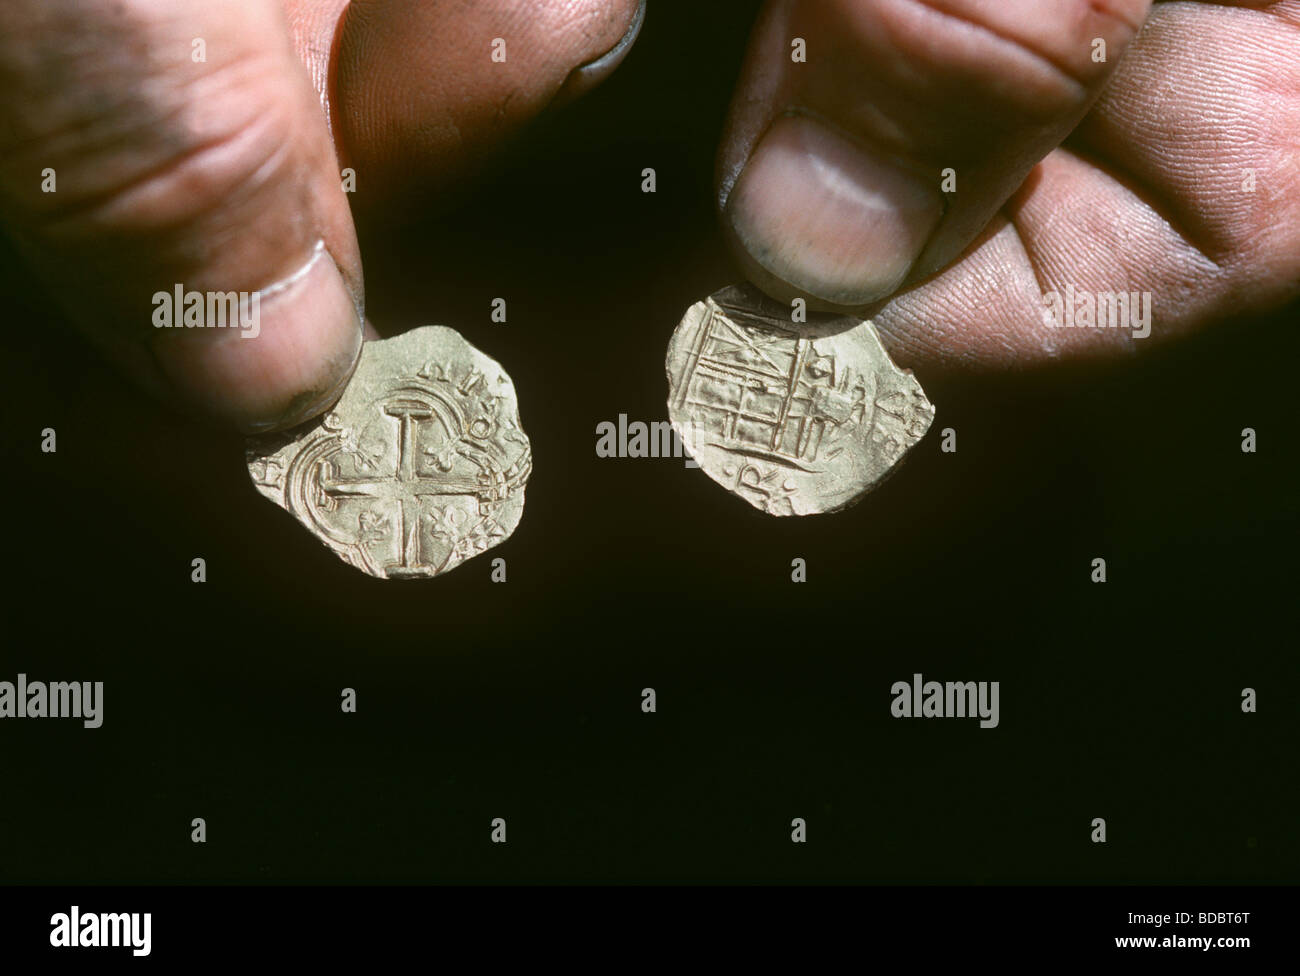 Gold and Silver Doubloons recovered from the shipwreck Las Maravillas sunk in 1658 Bahamas  - Stock Image